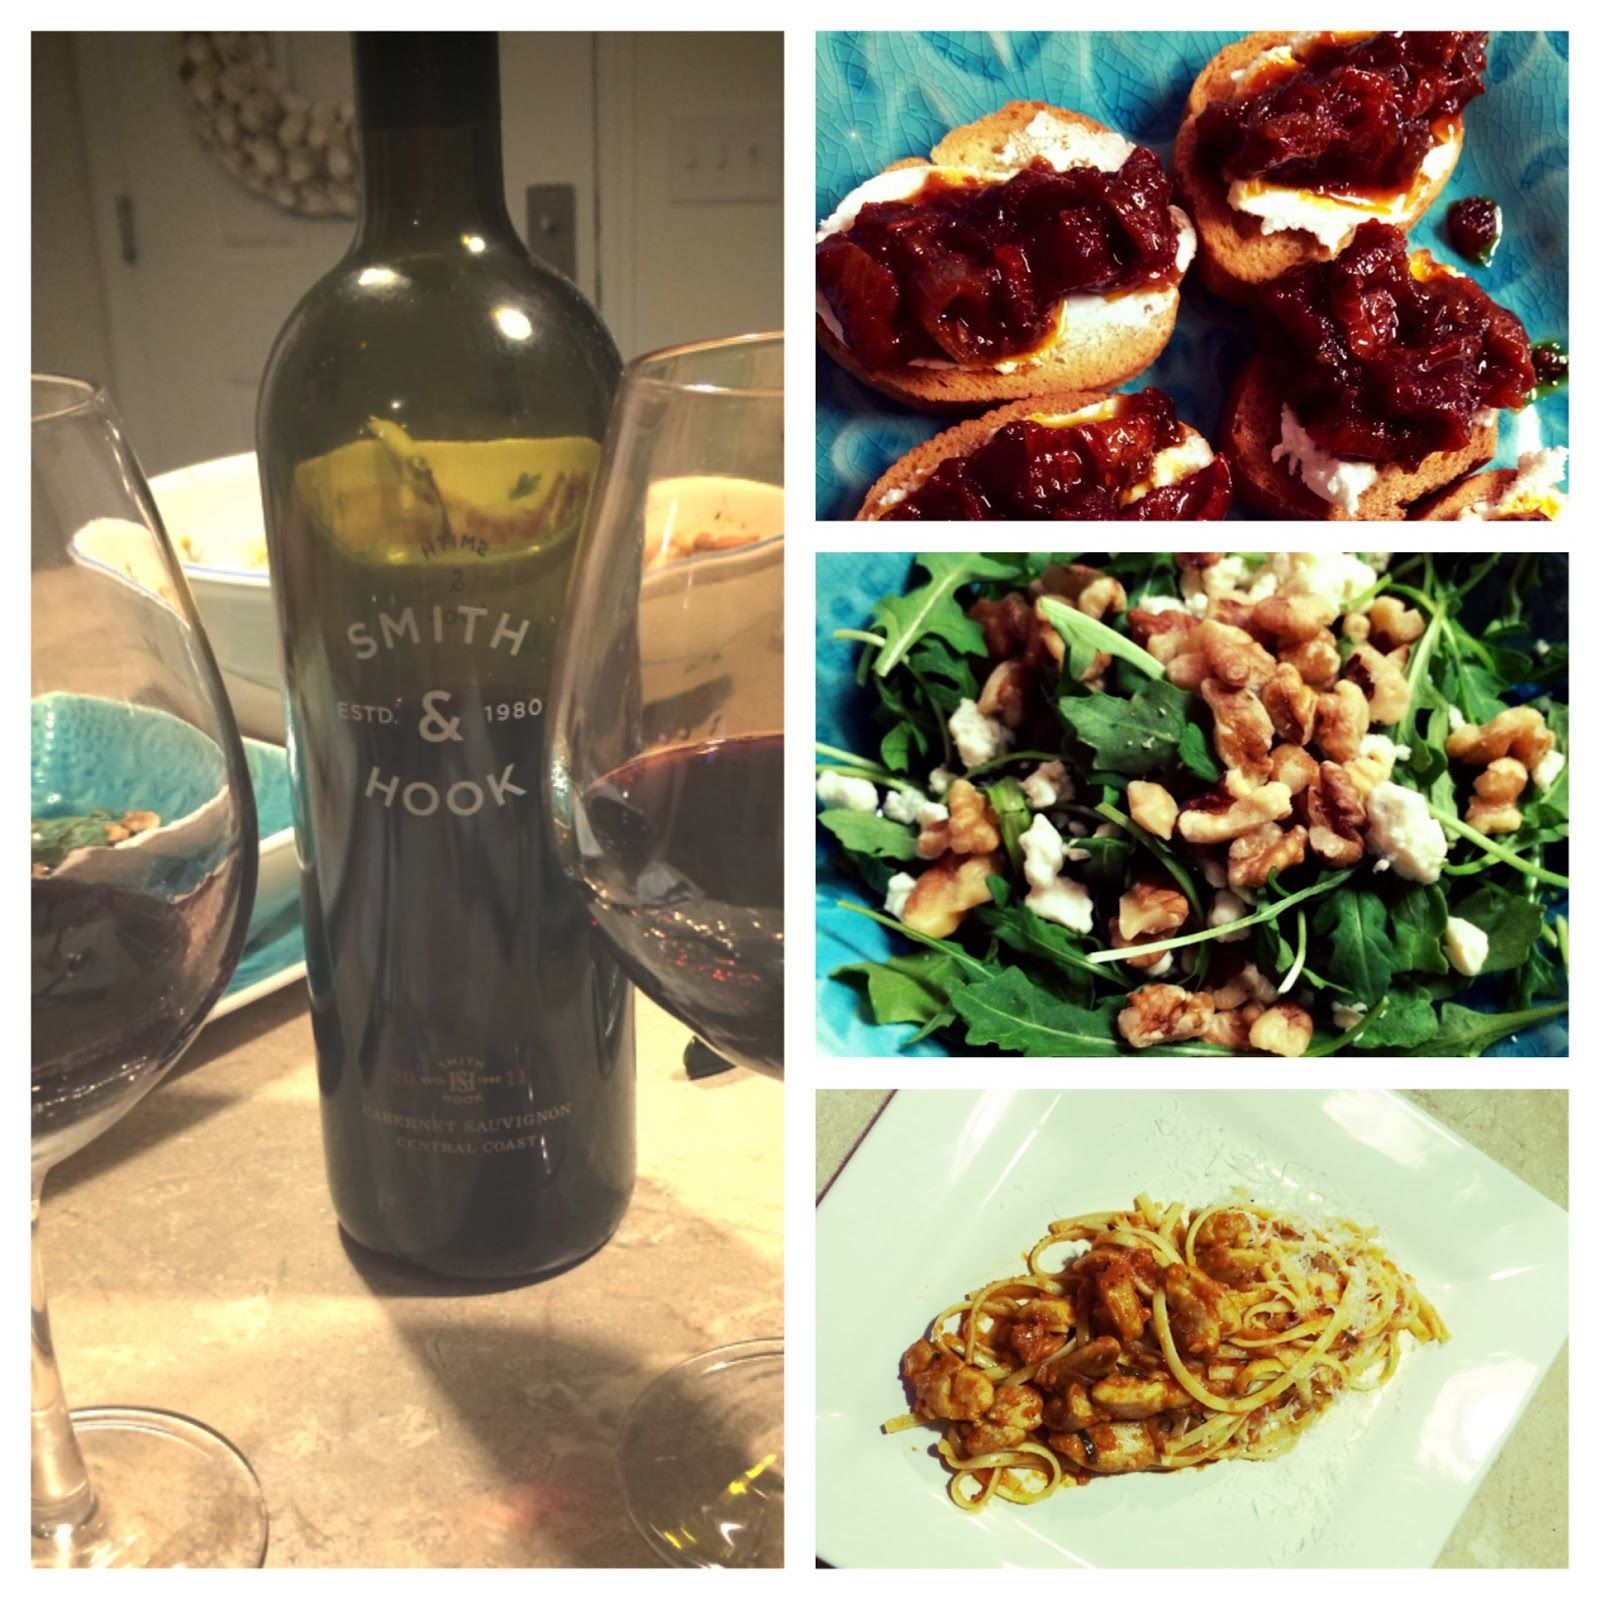 NEW ON THE BLOG: 2 Girls, 1 Year, 730 Moments to Share: High Five for Friday!! A Week of Awesome, DATE NIGHT MEAL IDEA